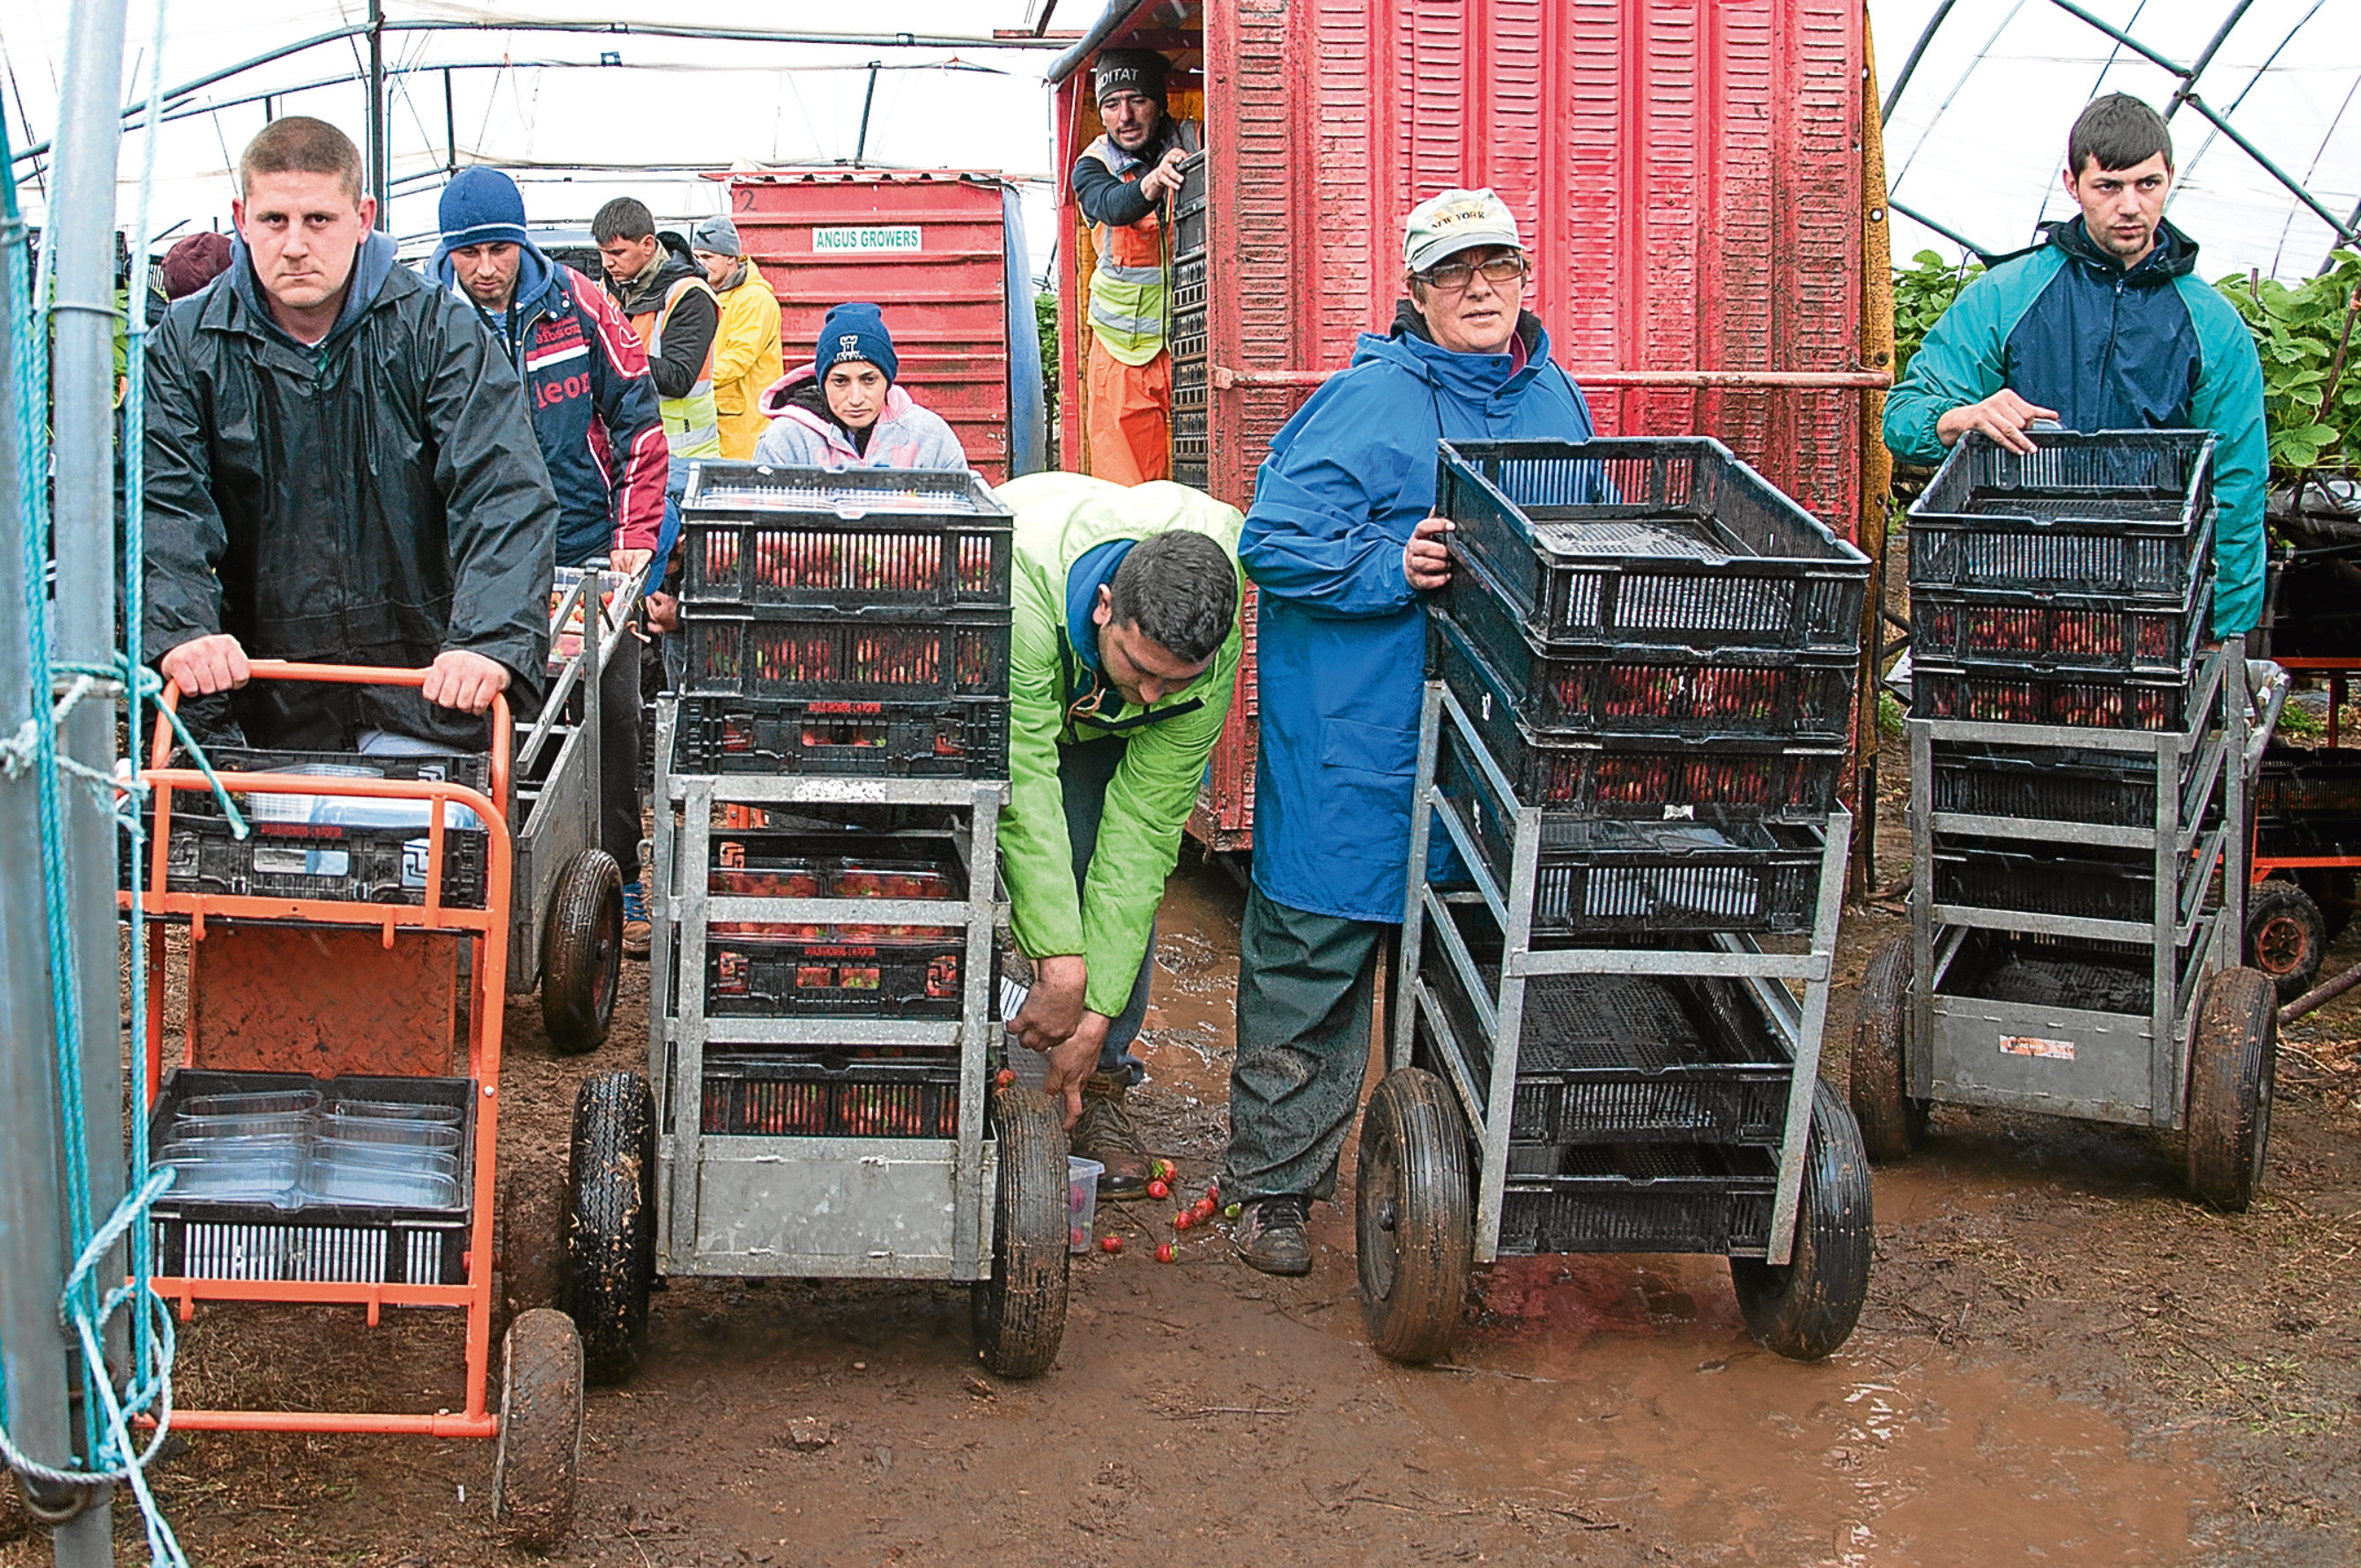 Workers at a soft fruit farm in Angus.